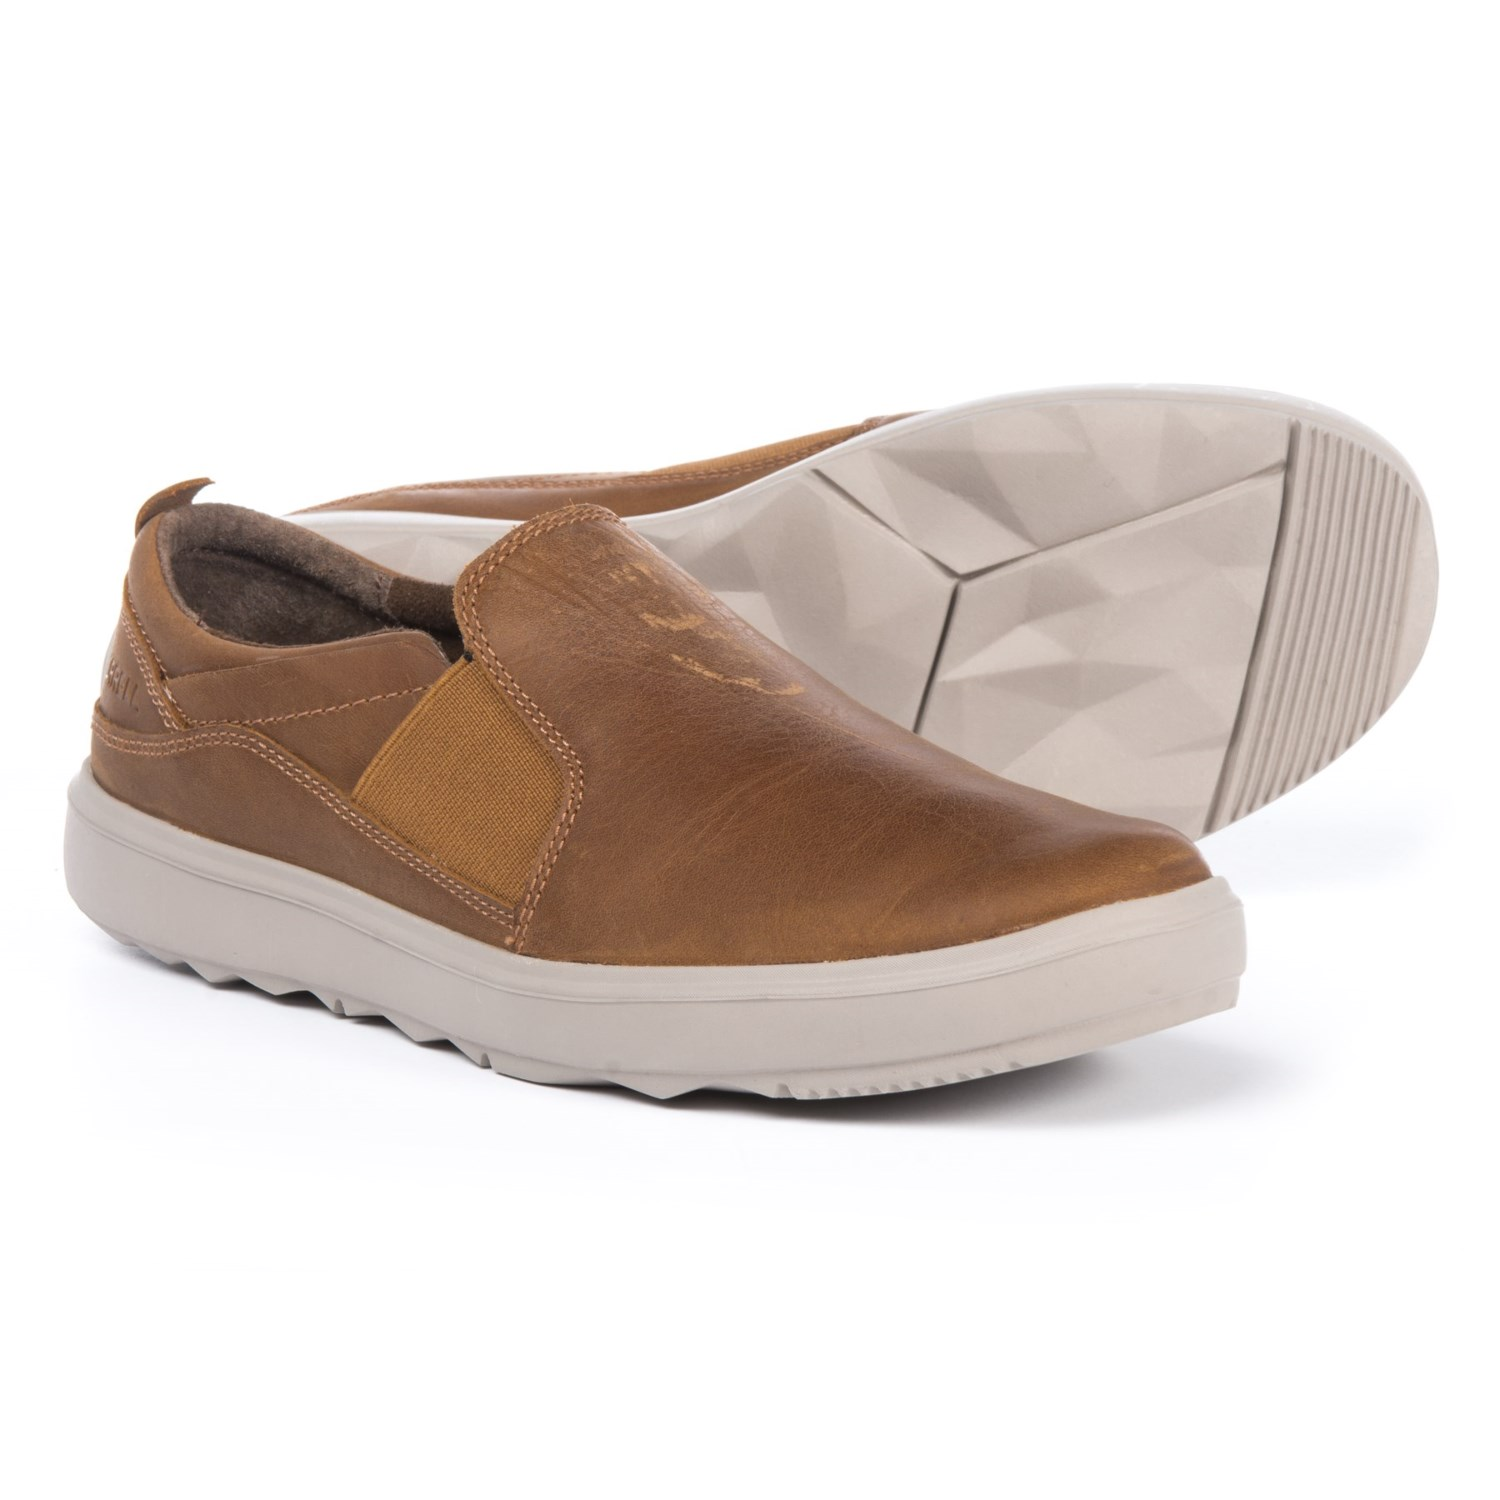 Merrell Around Town Moc Shoes - Slip-Ons (For Women) in Brown Sugar 4f2a5bb67f